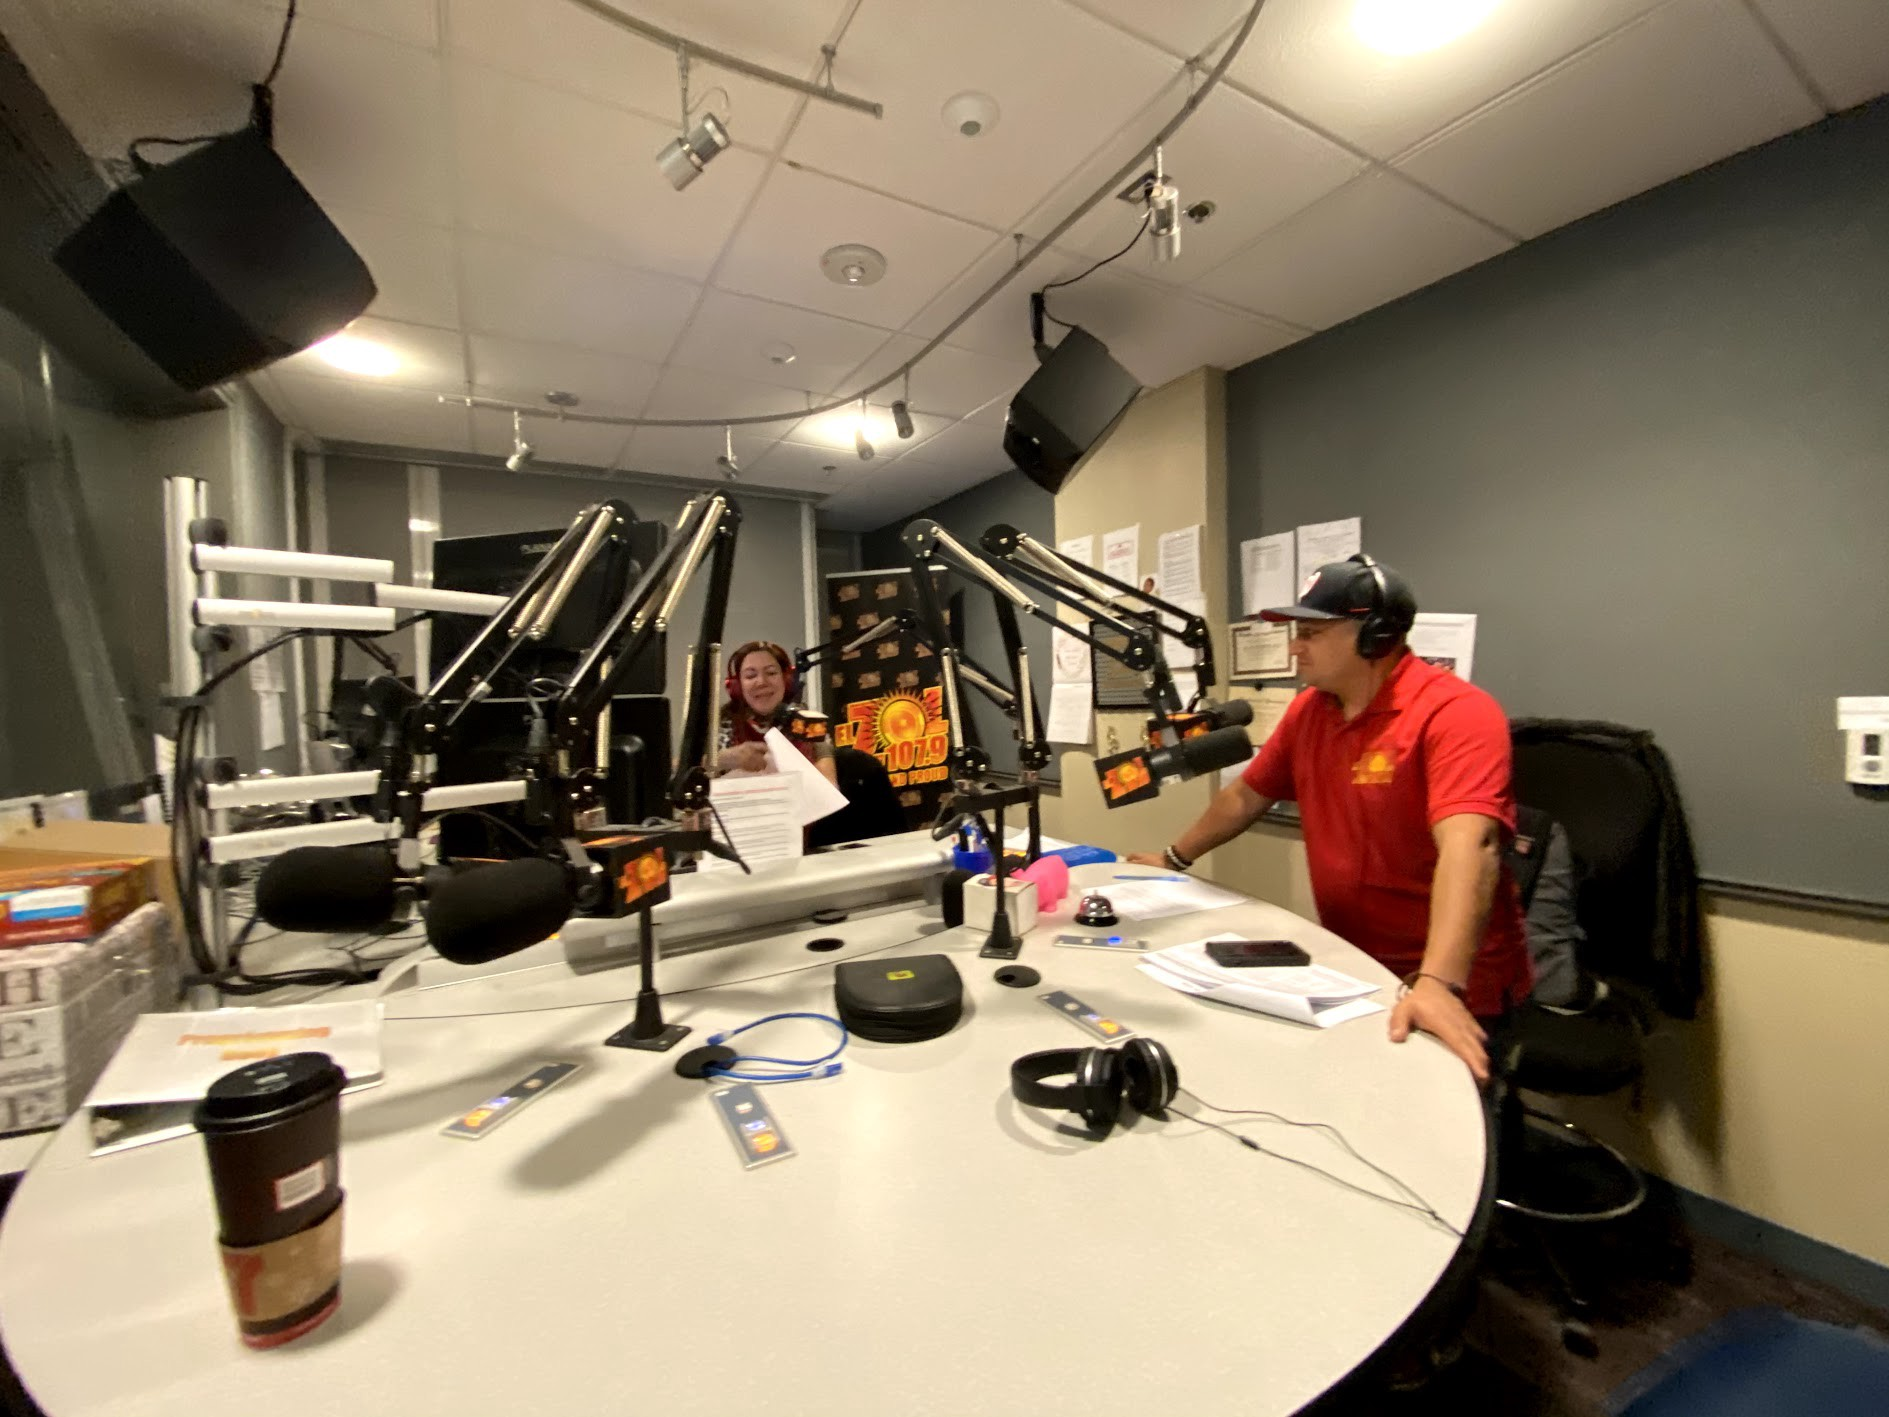 Image of a radio studio with a man and a woman at the microphones. The man is wearing a black had and a red shirt. The woman is behind equipment.